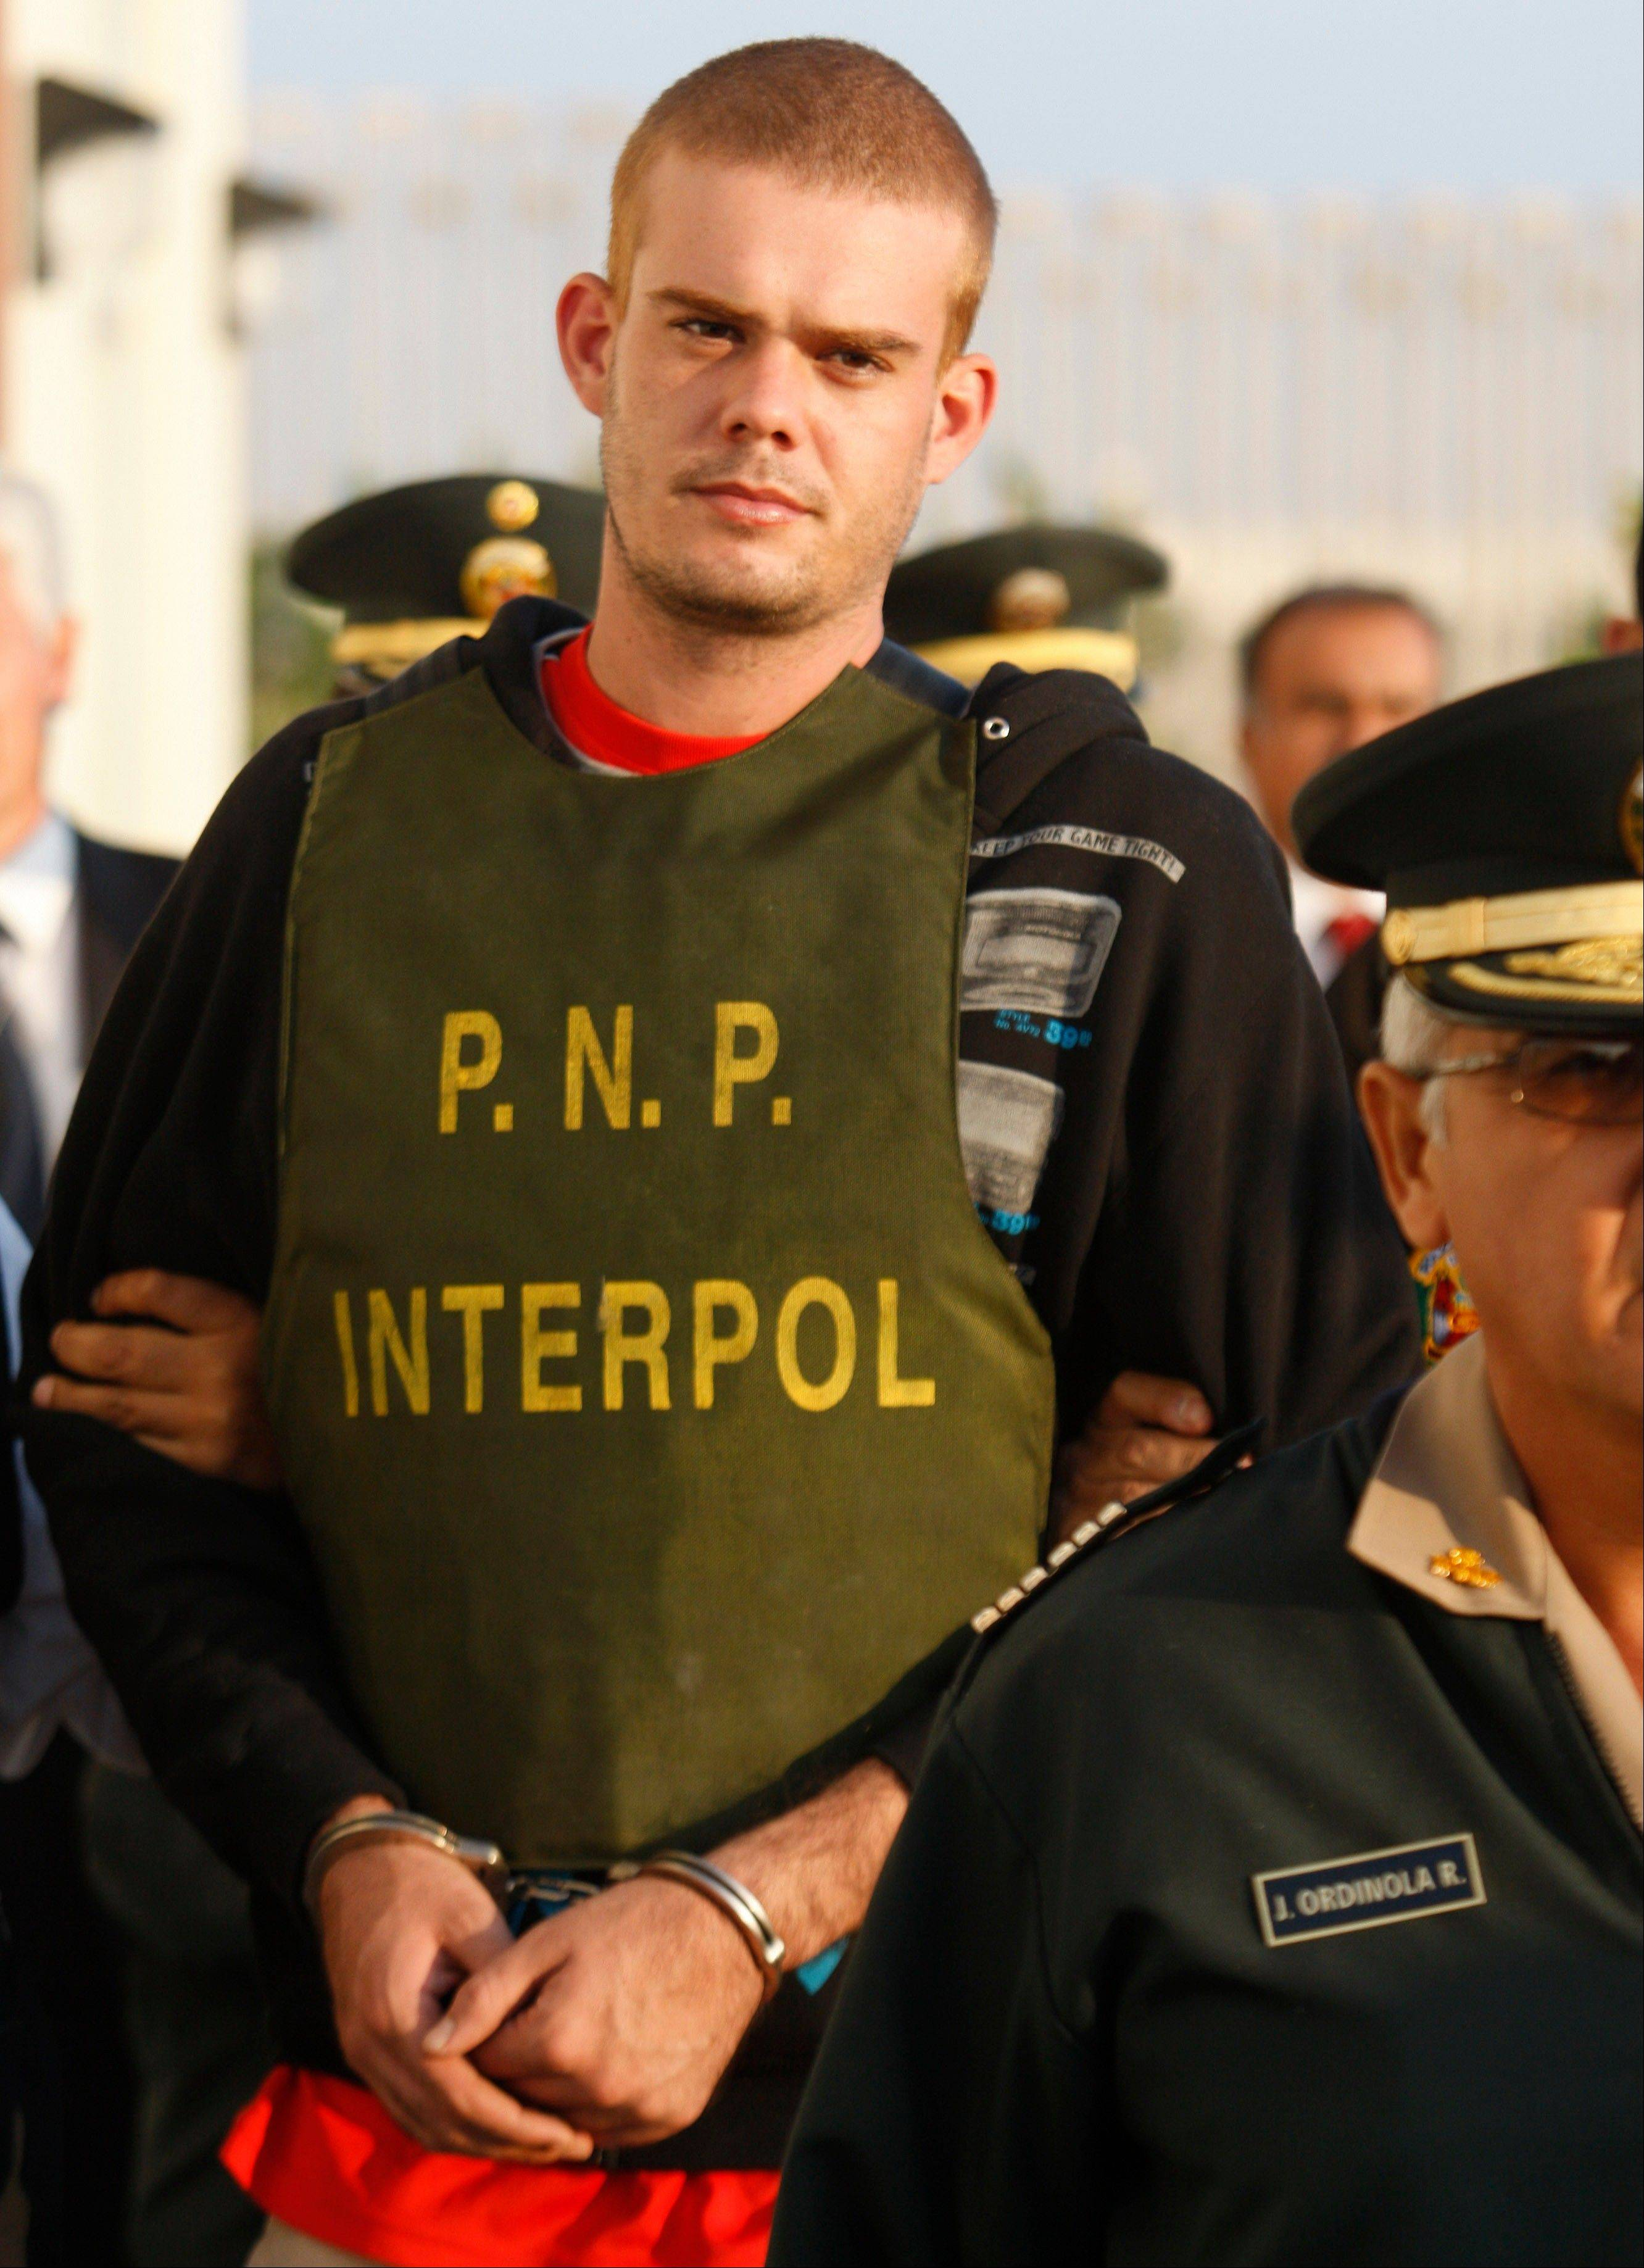 A Dutch newspaper said on Monday that Joran van der Sloot, who is serving a 28-year-sentence for murdering a young Peruvian woman, has impregnated a woman while imprisoned in Lima.